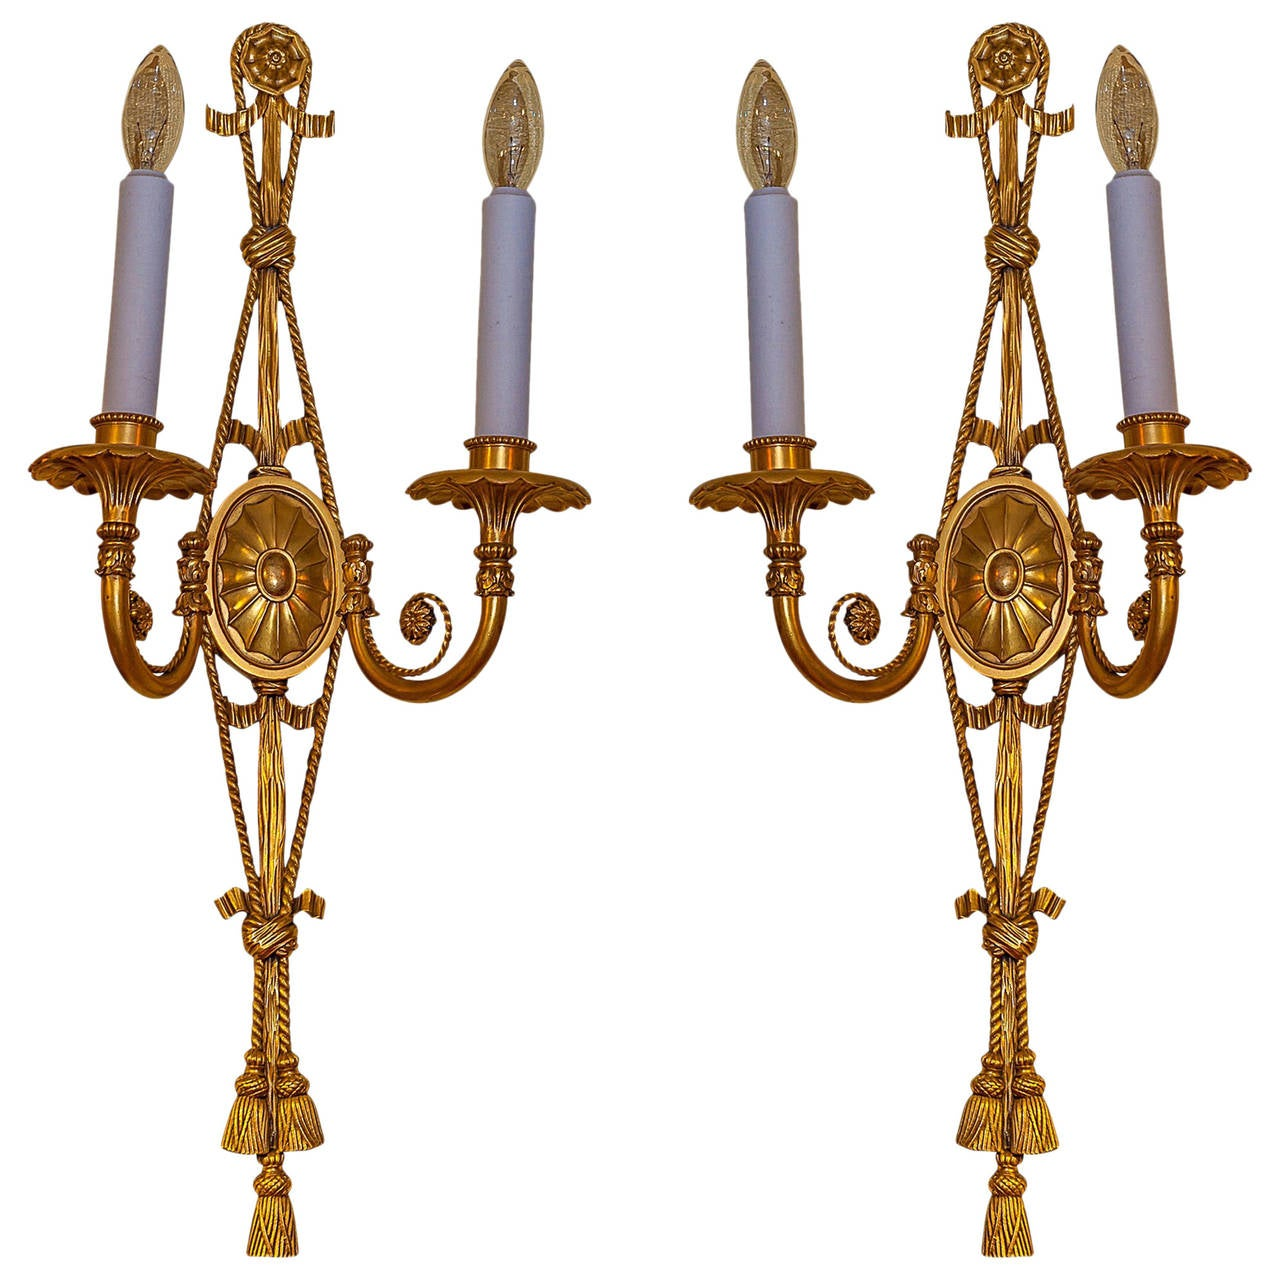 Pair of Adam Style Gilt Bronze Two-Arm Wall Light Sconces For Sale at 1stdibs